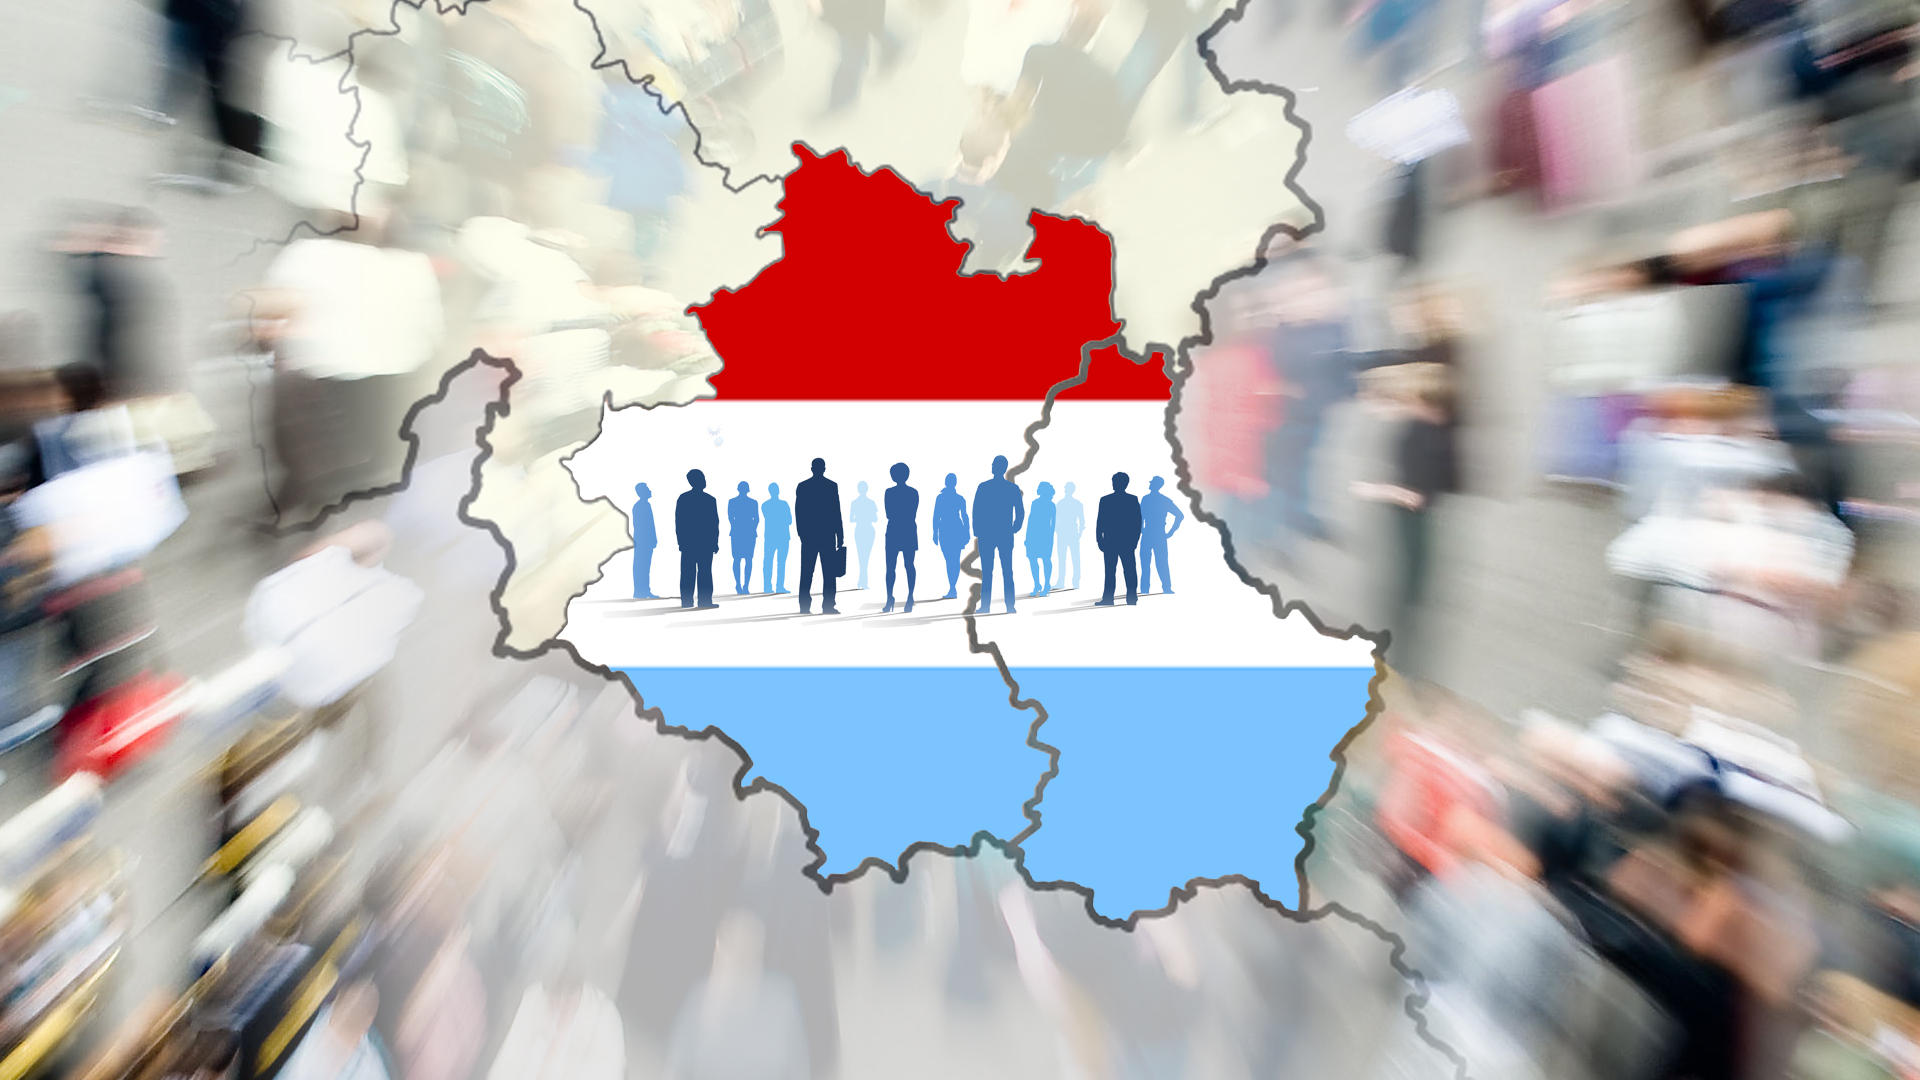 """""""Beautiful bride for Luxembourg?"""": Province of Luxembourg Facebook group calls for reunification with Luxembourg"""